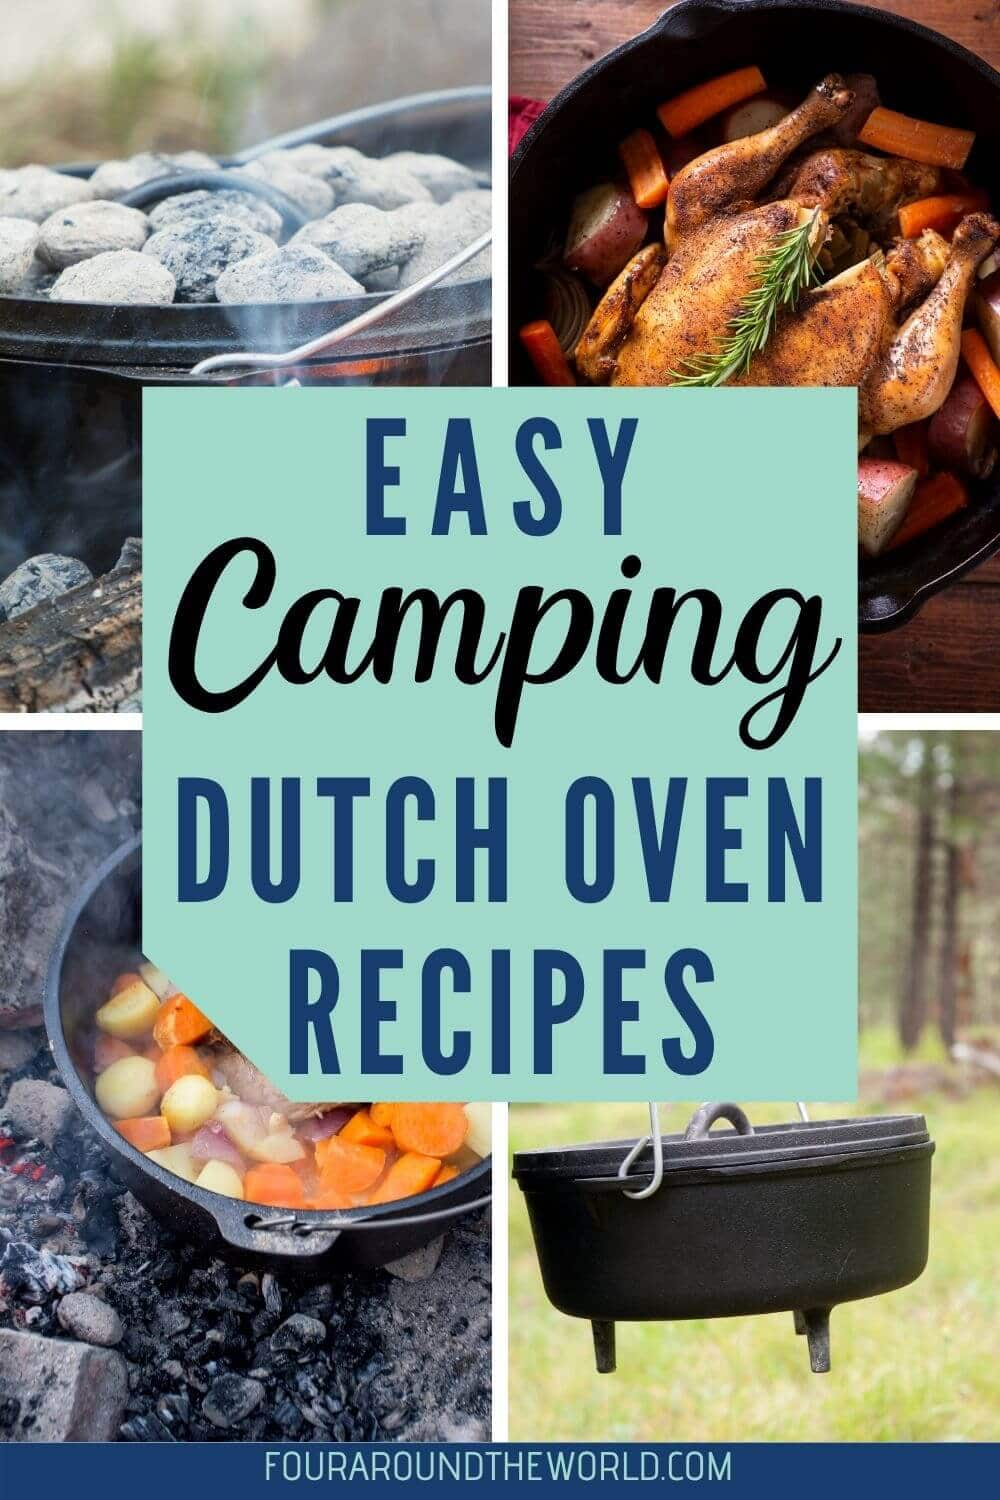 Easy Dutch oven recipes for camping